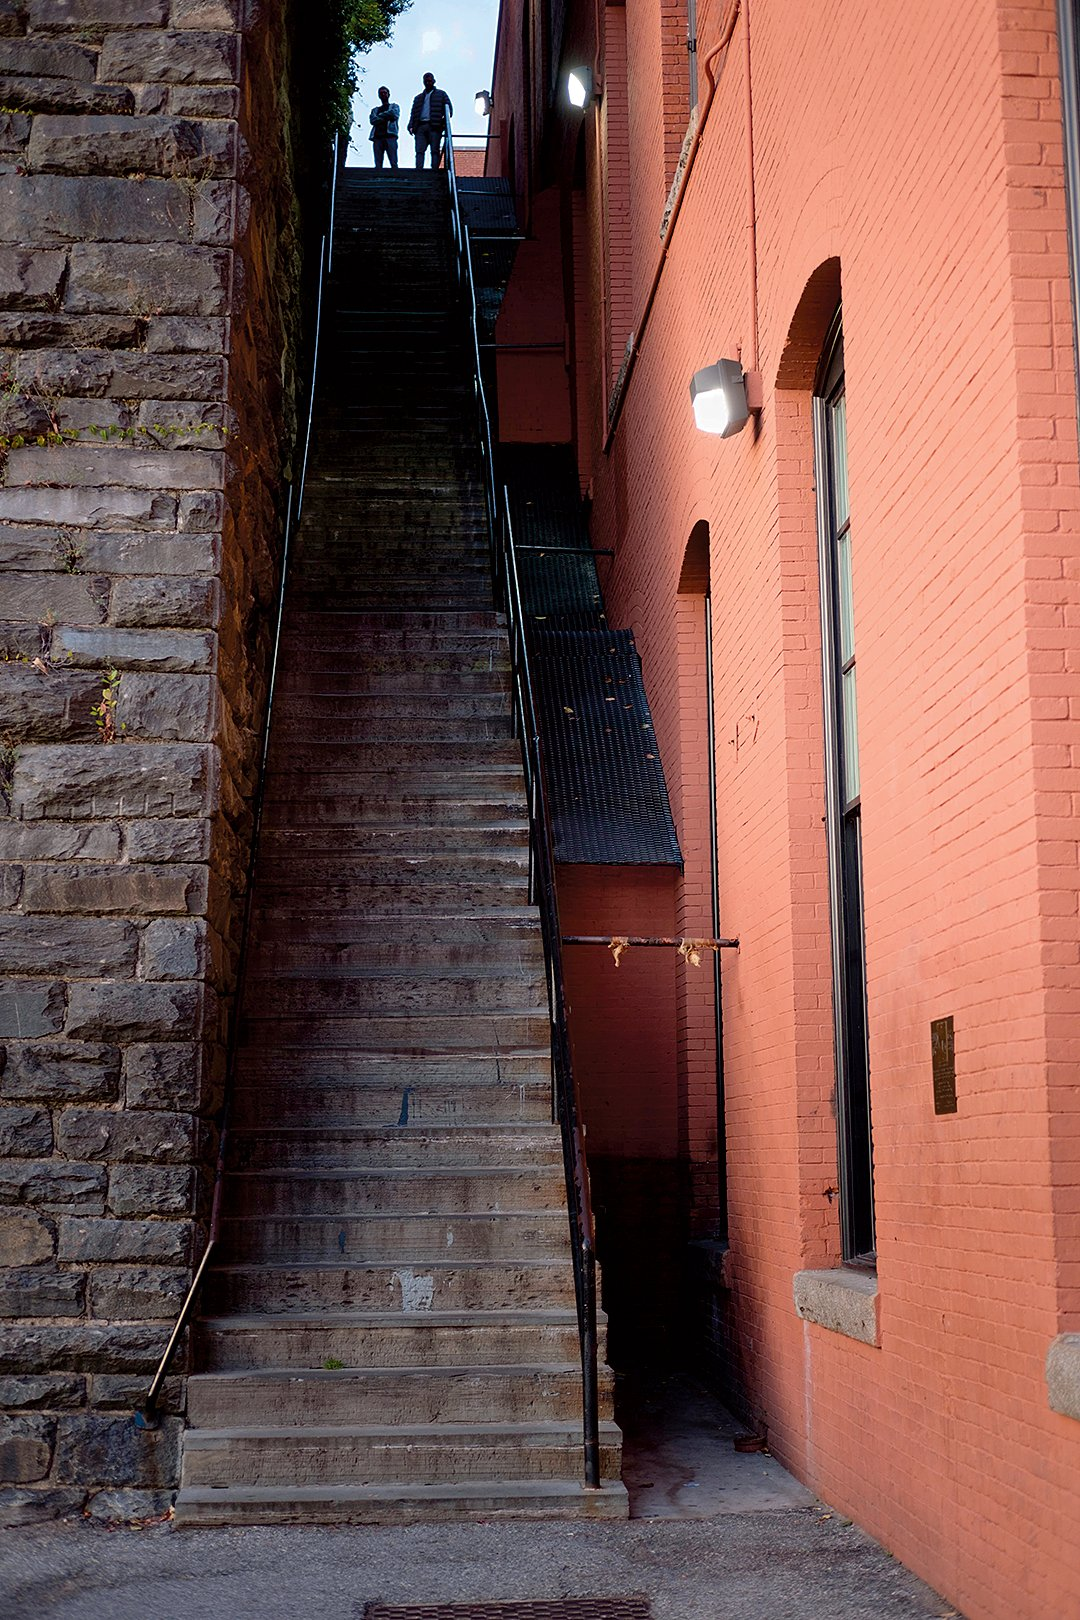 DC's Scariest Workout: The so-called Exorcist Steps, steep and storied. Photograph by Rubens Alarcon/Alamy.